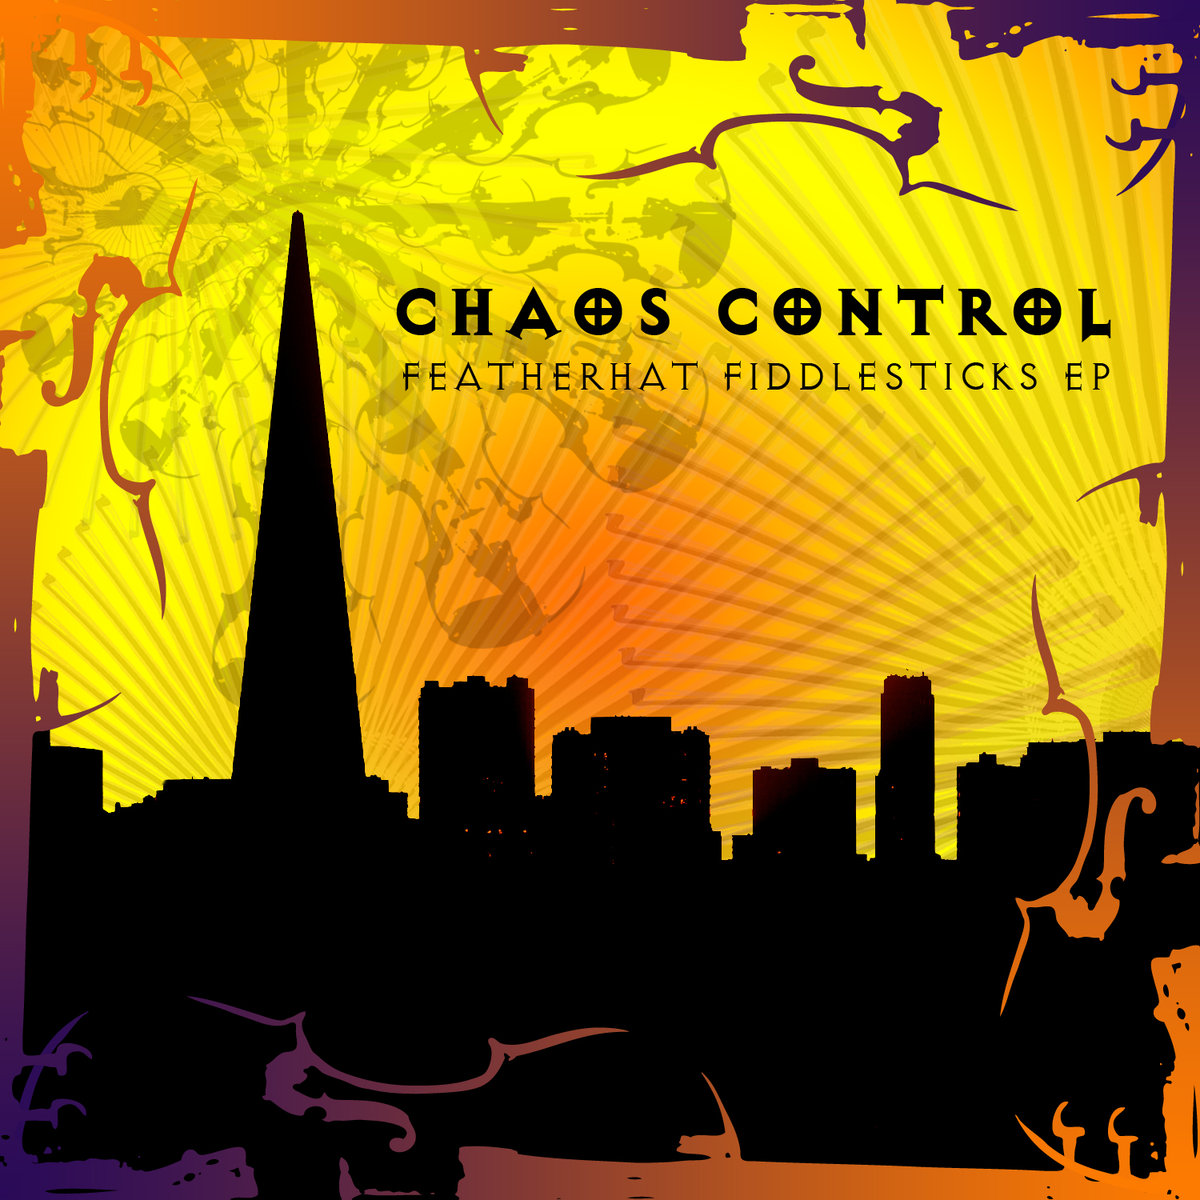 Chaos Control feat. DJ Swamp - Stardate Scratch @ 'Featherhat Fiddlesticks' album (bass, chaos control)